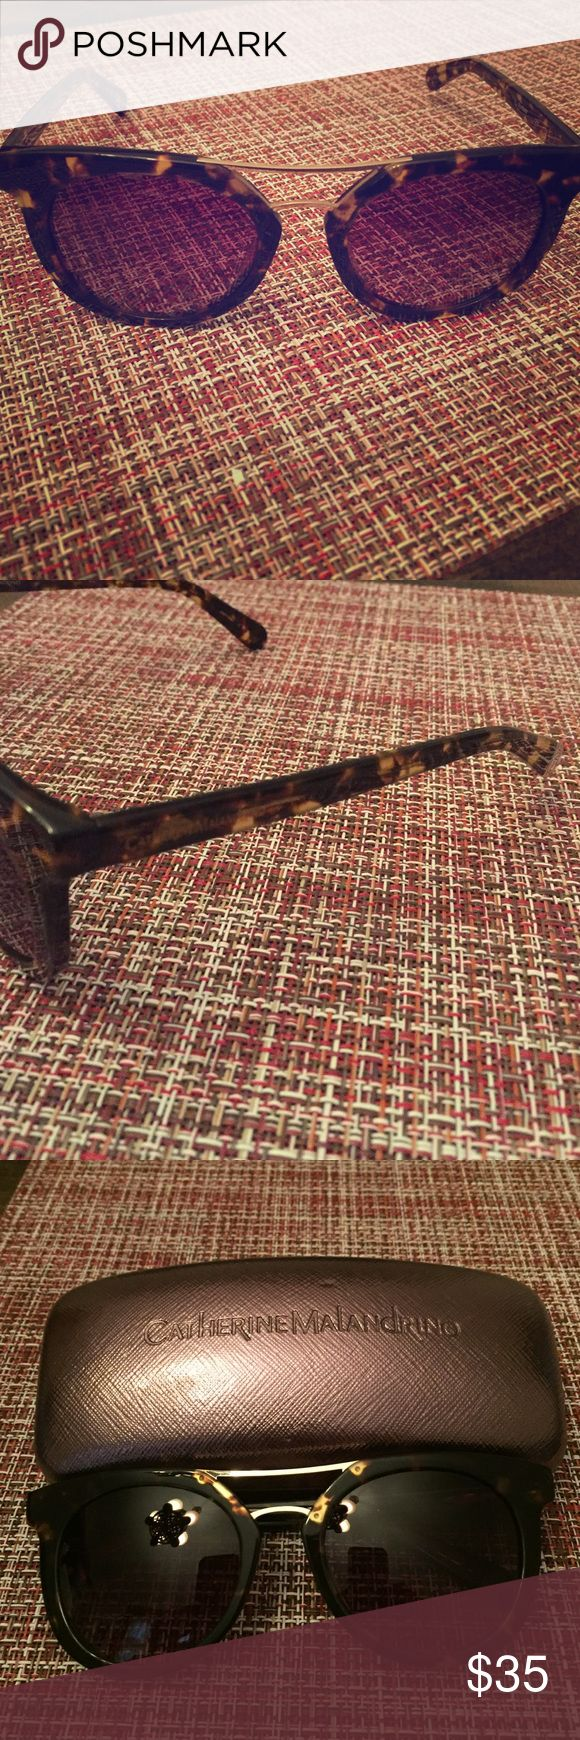 Catherine Malandrino Tortoise Sunglasses Tortoise with gold accented sunglasses by Catherine Malandrino. Comes with original case. Only worn a few times and in excellent condition. Catherine Malandrino Accessories Sunglasses